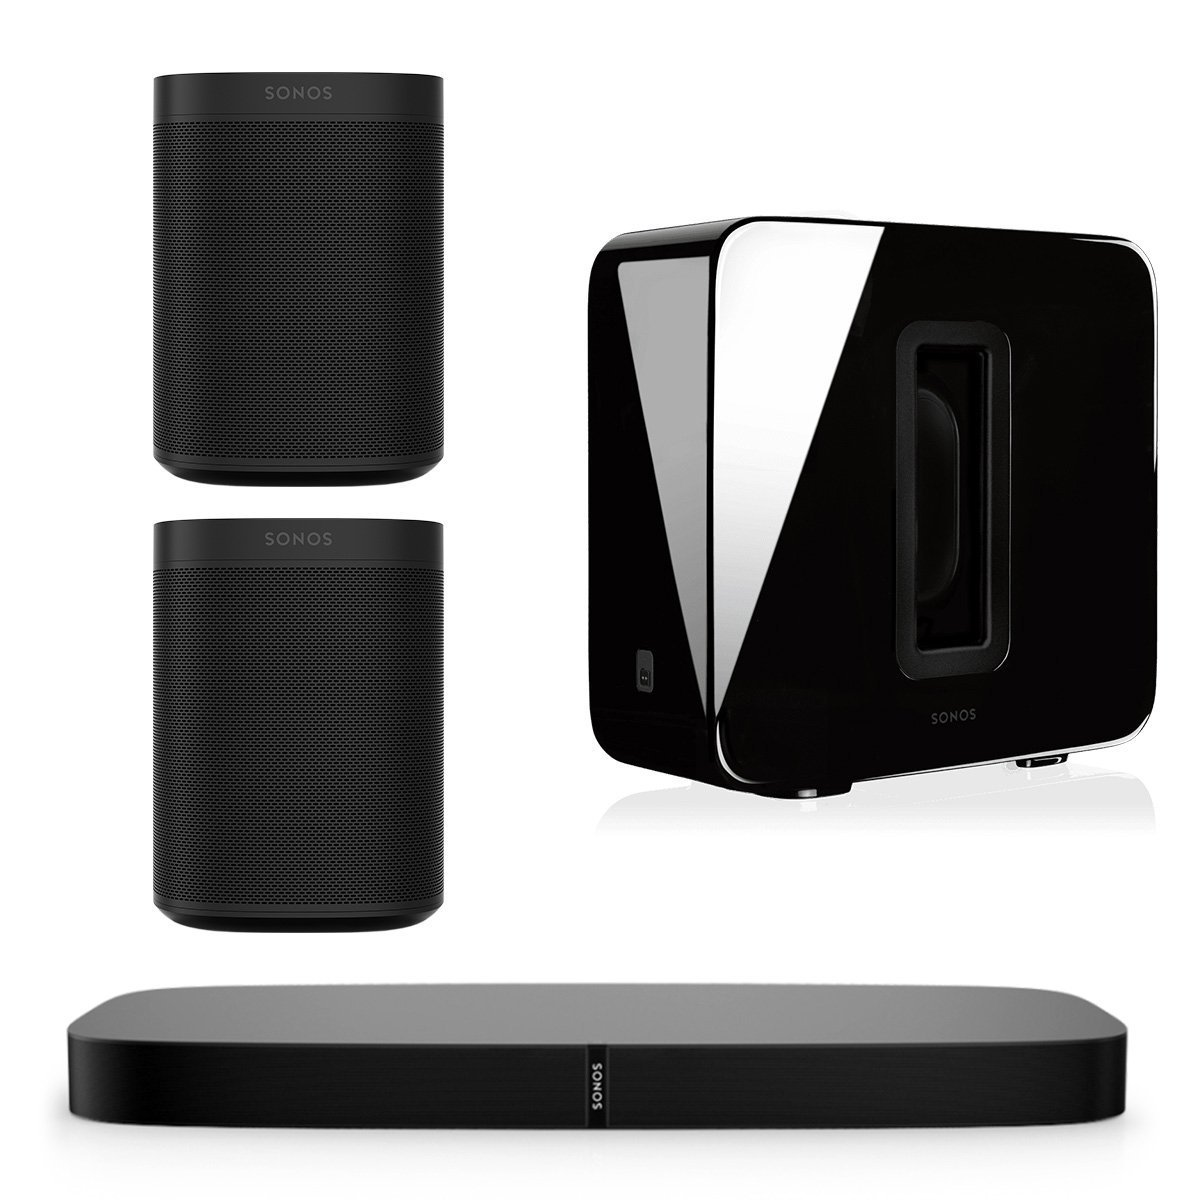 Sonos 5.1 PLAYBASE Home Theater System with ONE Streaming Speakers (Pair) and SUB Wireless Subwoofer (Black) by Sonos